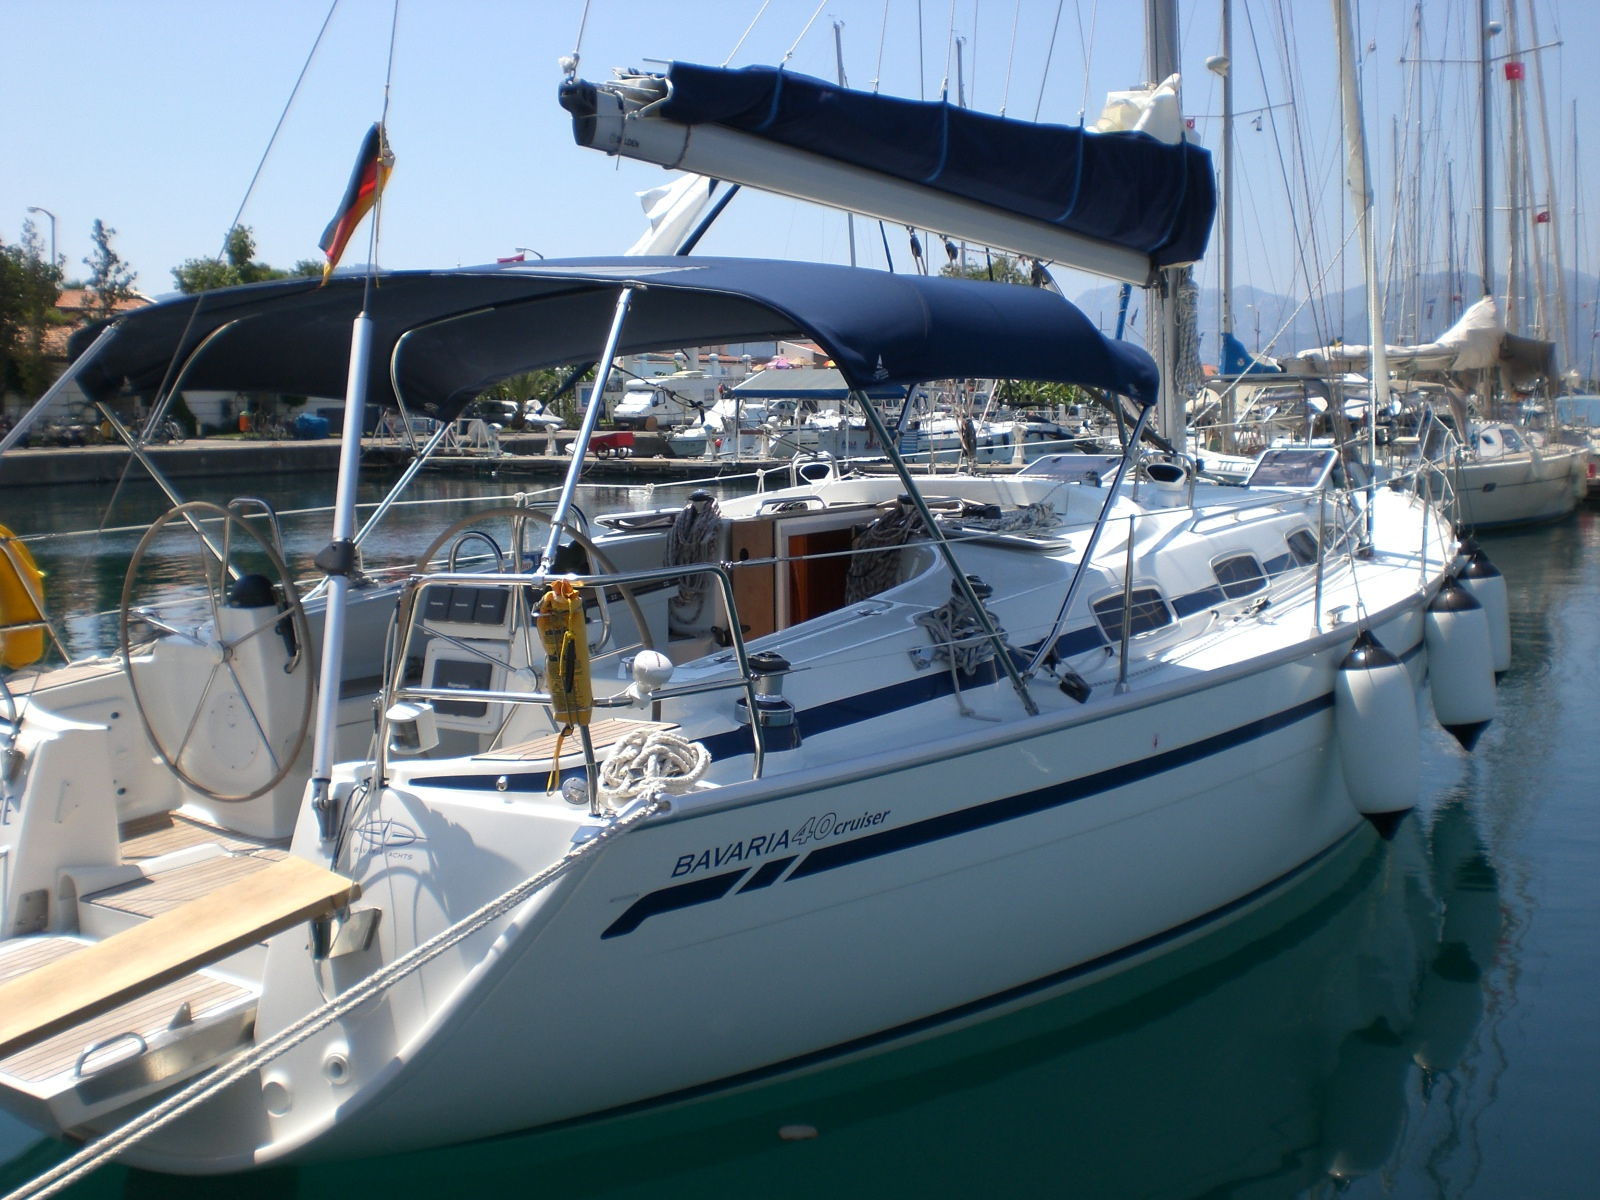 Turkey, Marmaris. Bavaria 40 Cruiser